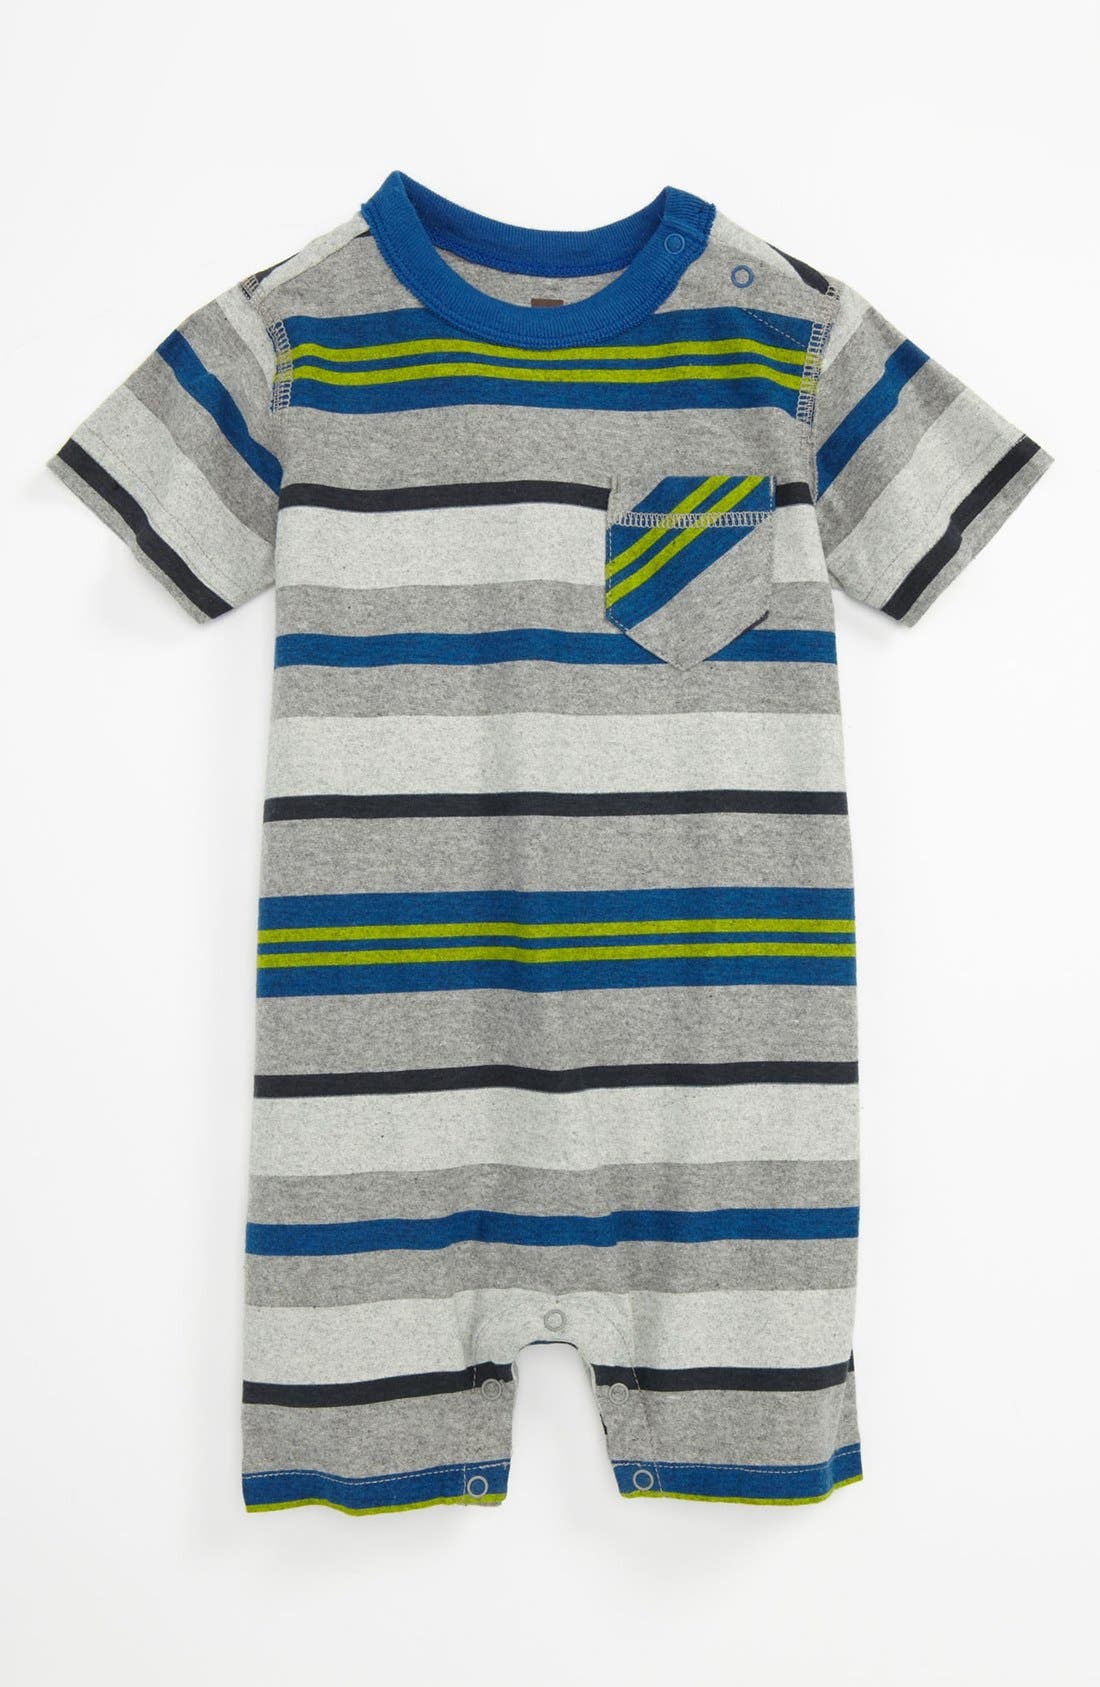 Alternate Image 1 Selected - Tea Collection 'Surf Beach' Romper (Baby)